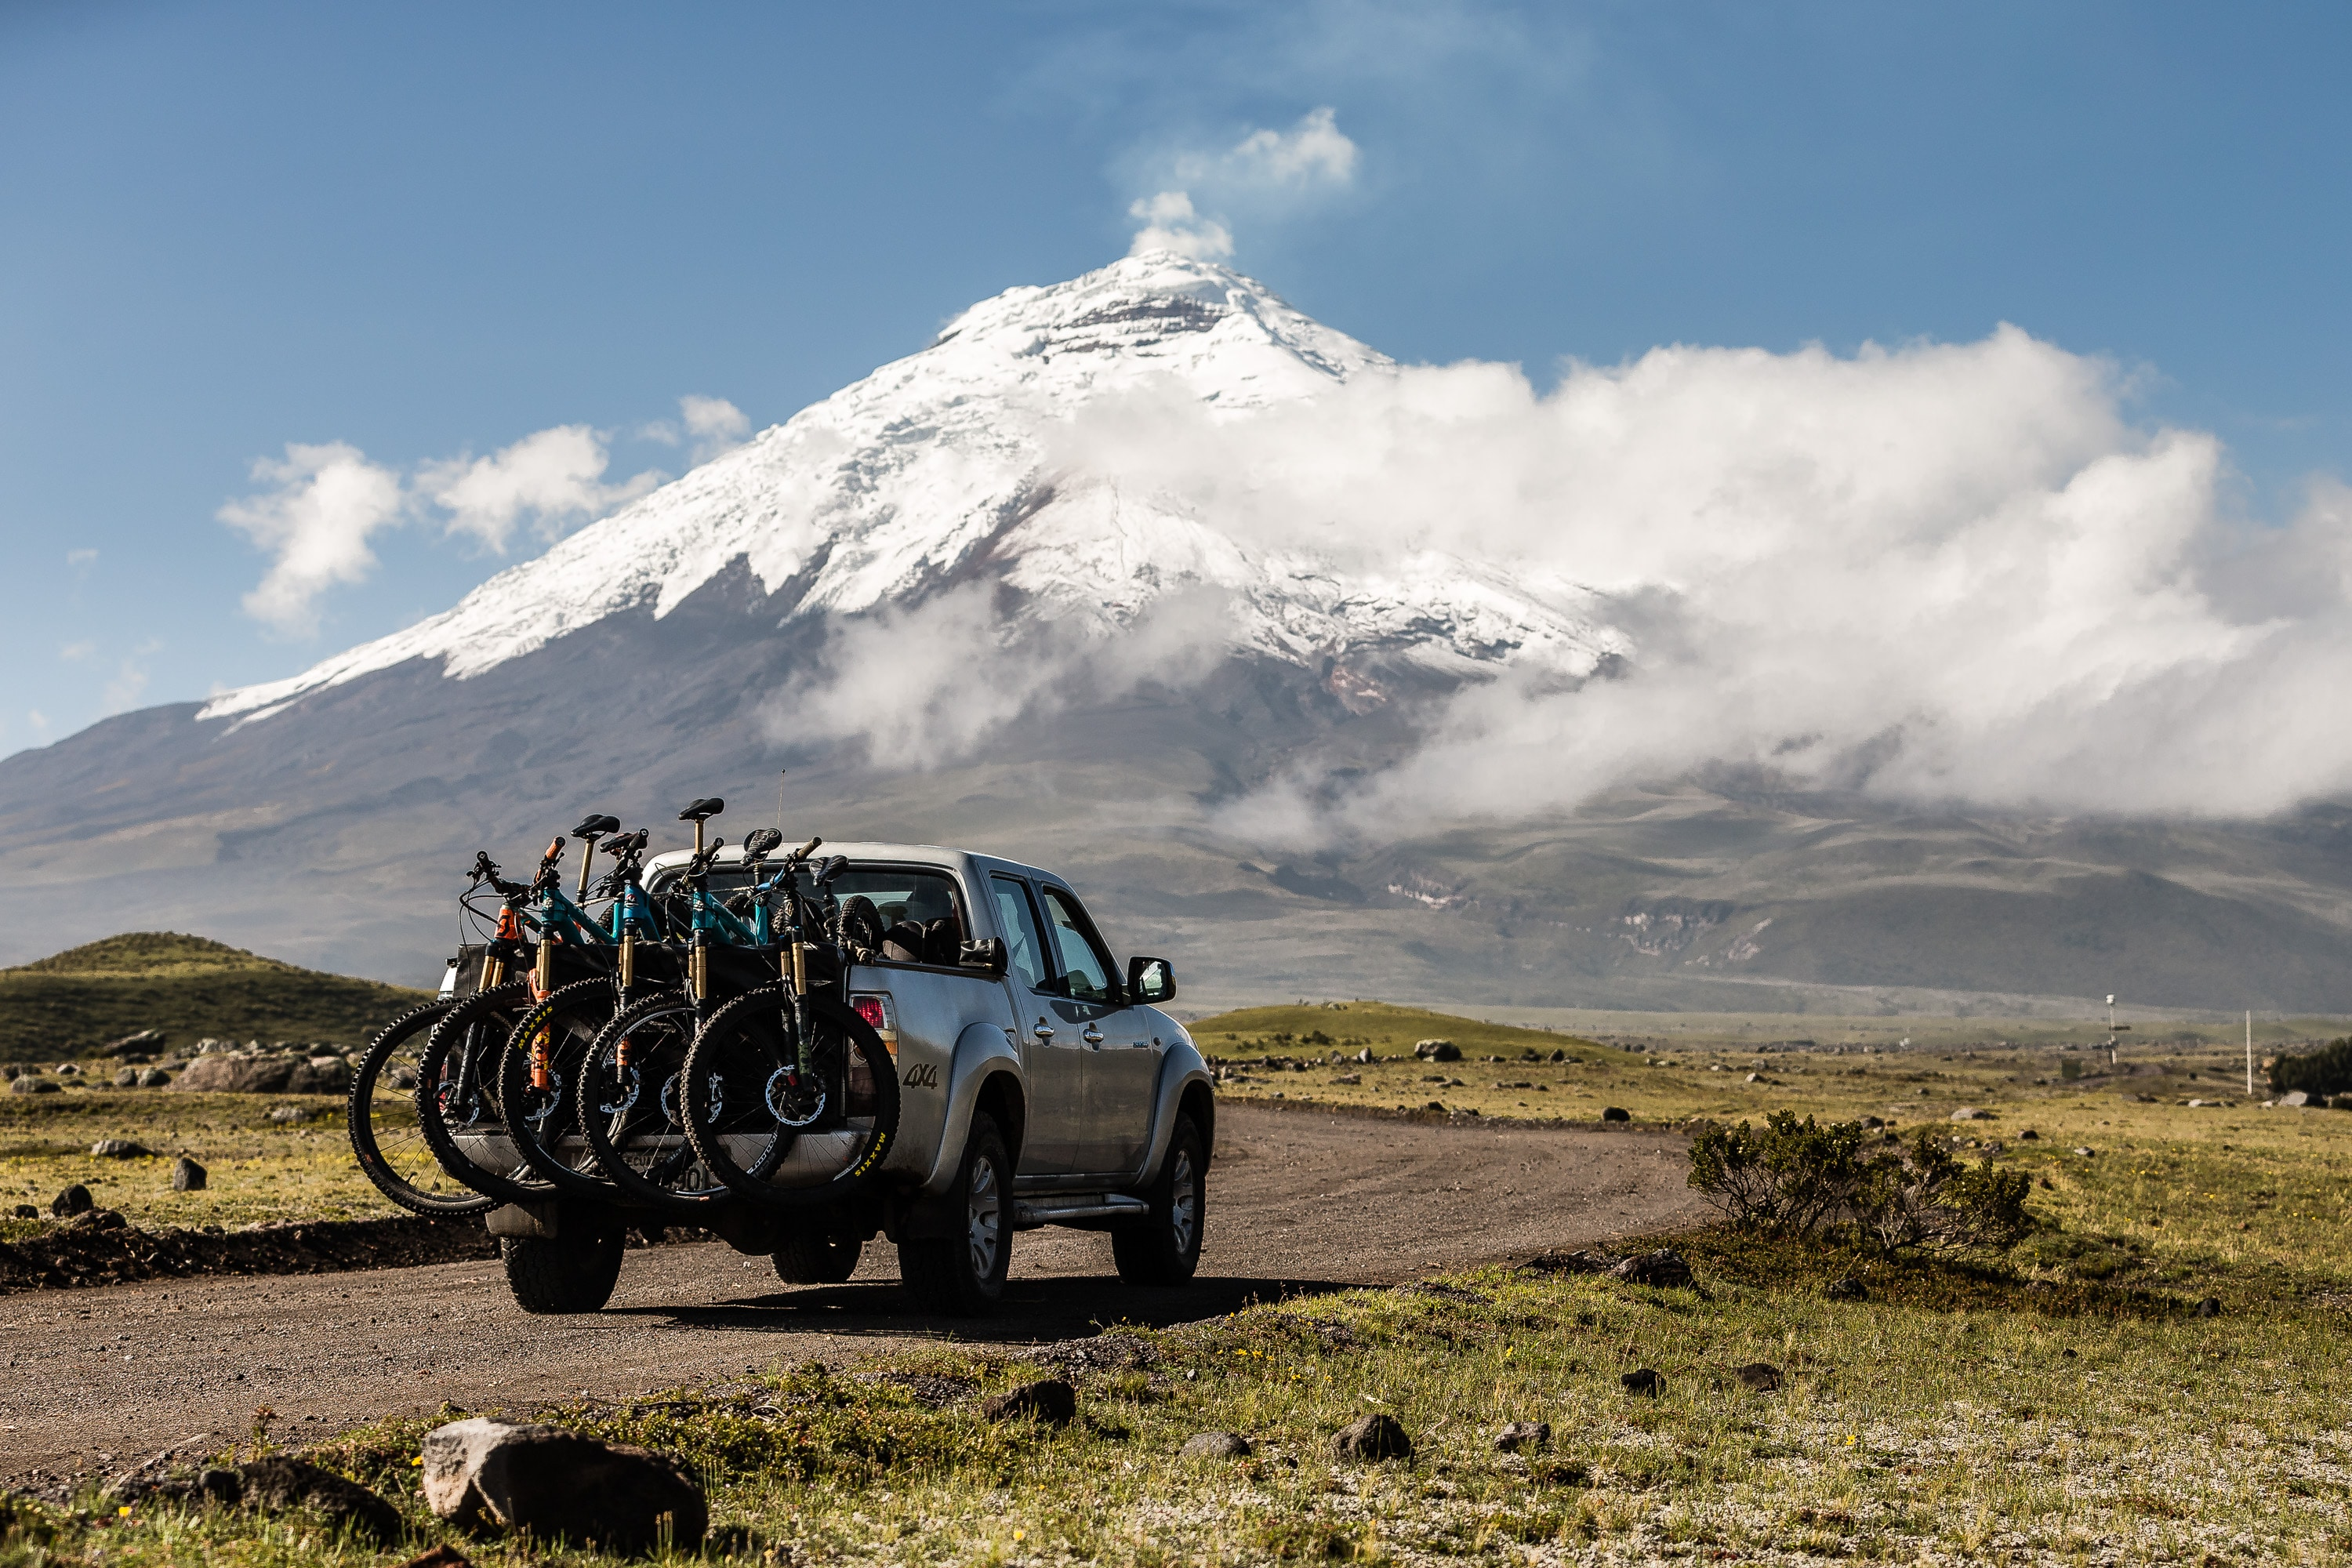 Heading towards the volcano - Ecuador MTB Film